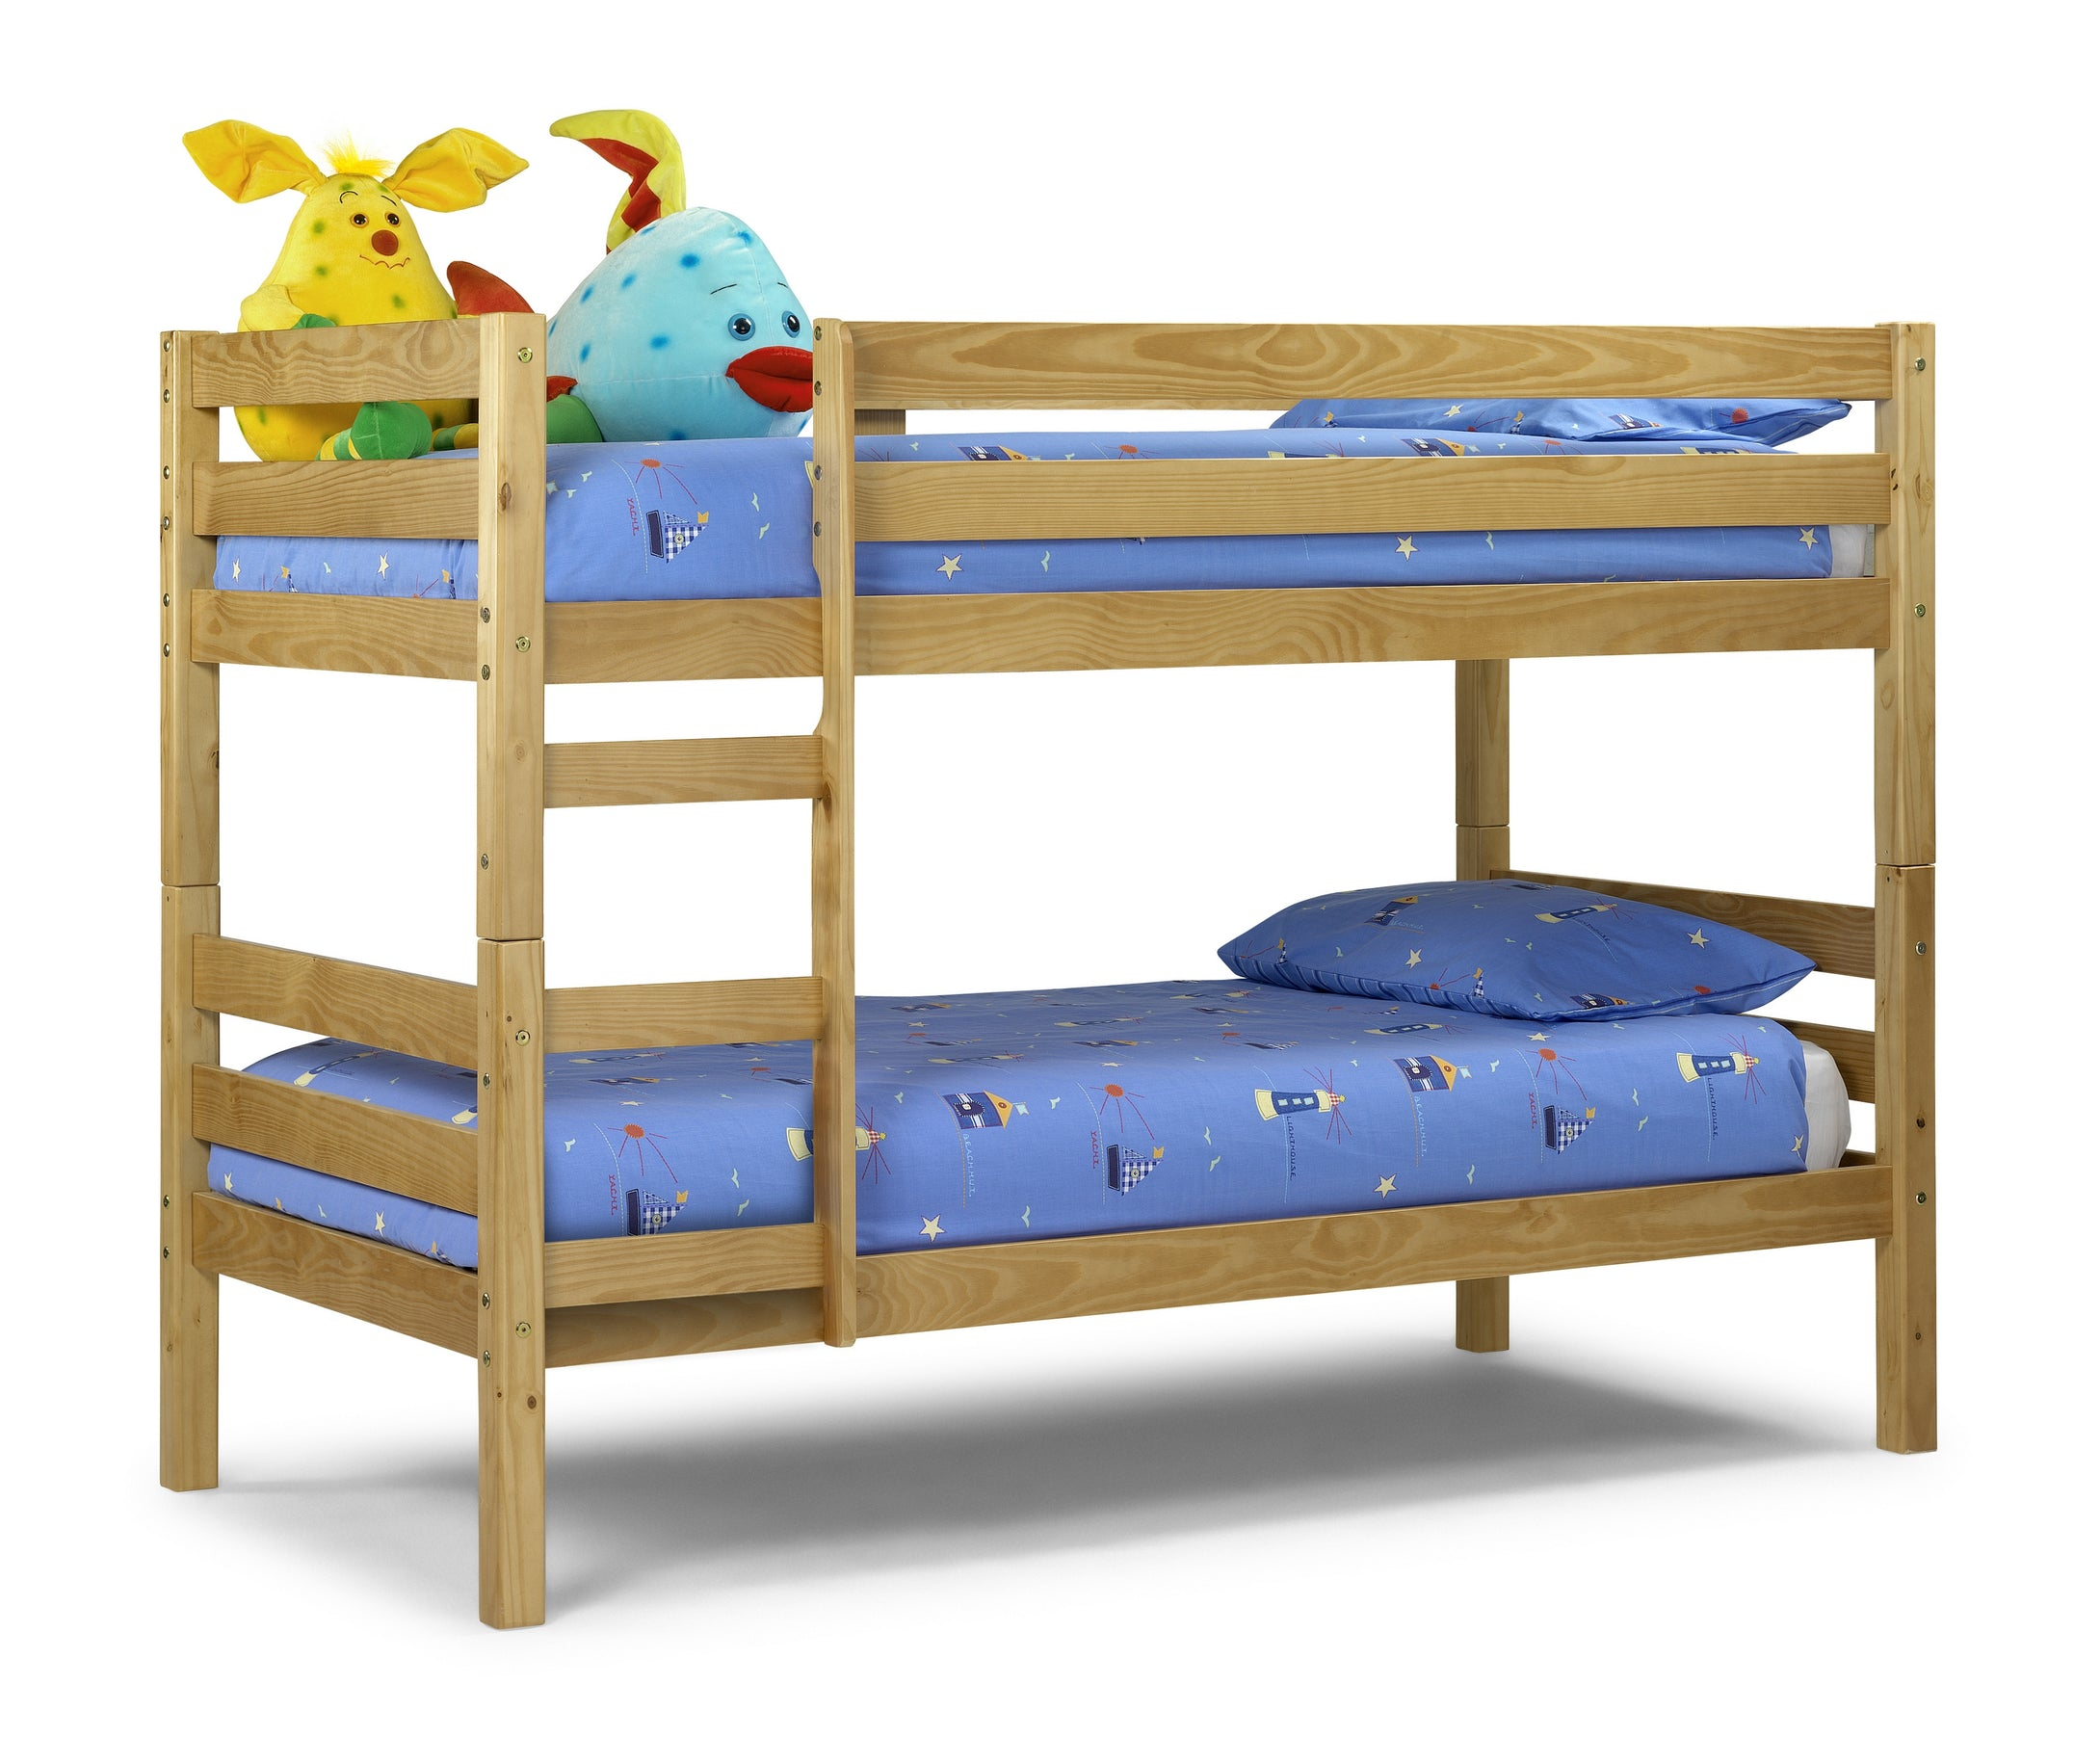 Solid pine bunk bed | Wyoming wooden twin bunks-Childrens Beds-bedsmart